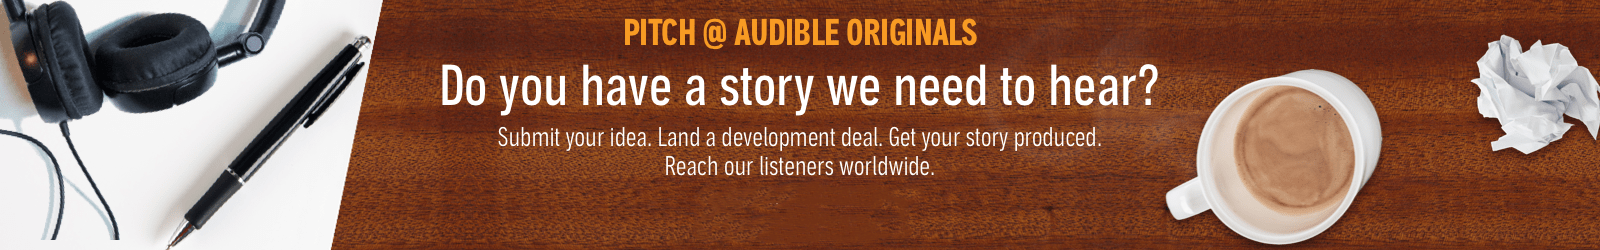 Pitch @ Audible